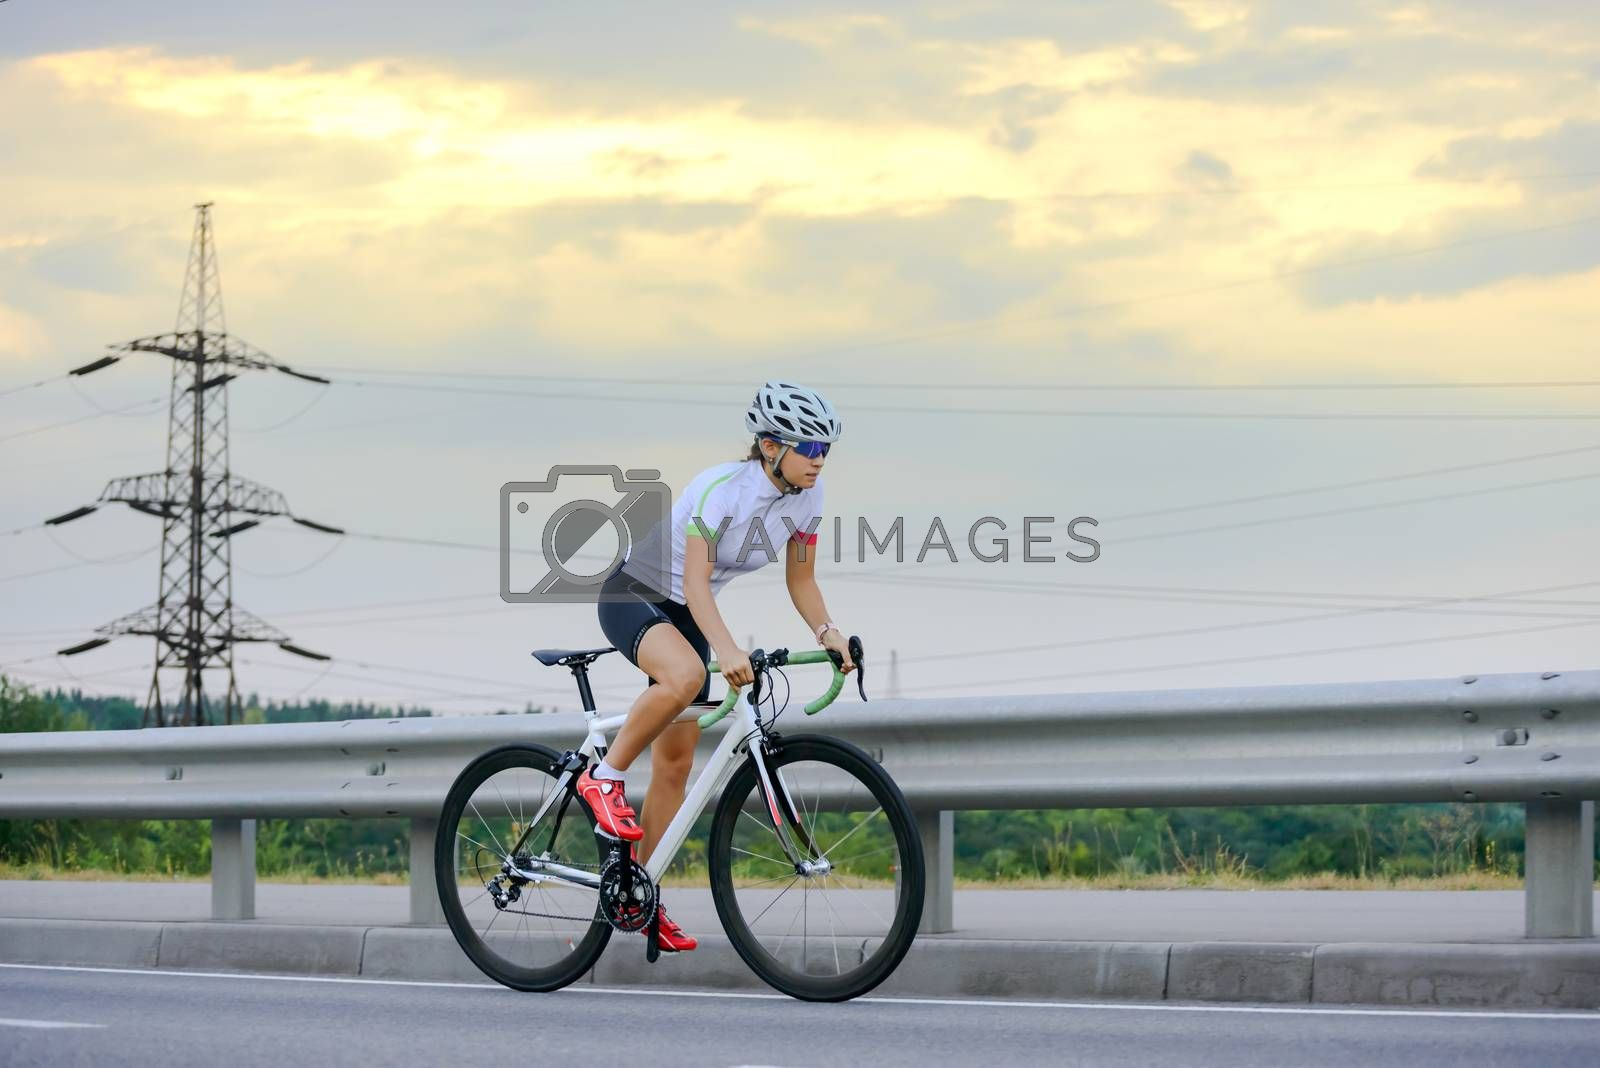 Young Woman Cyclist Riding Road Bike at Sunset. Adventure, Travel, Healthy Lifestyle and Sport Concept.